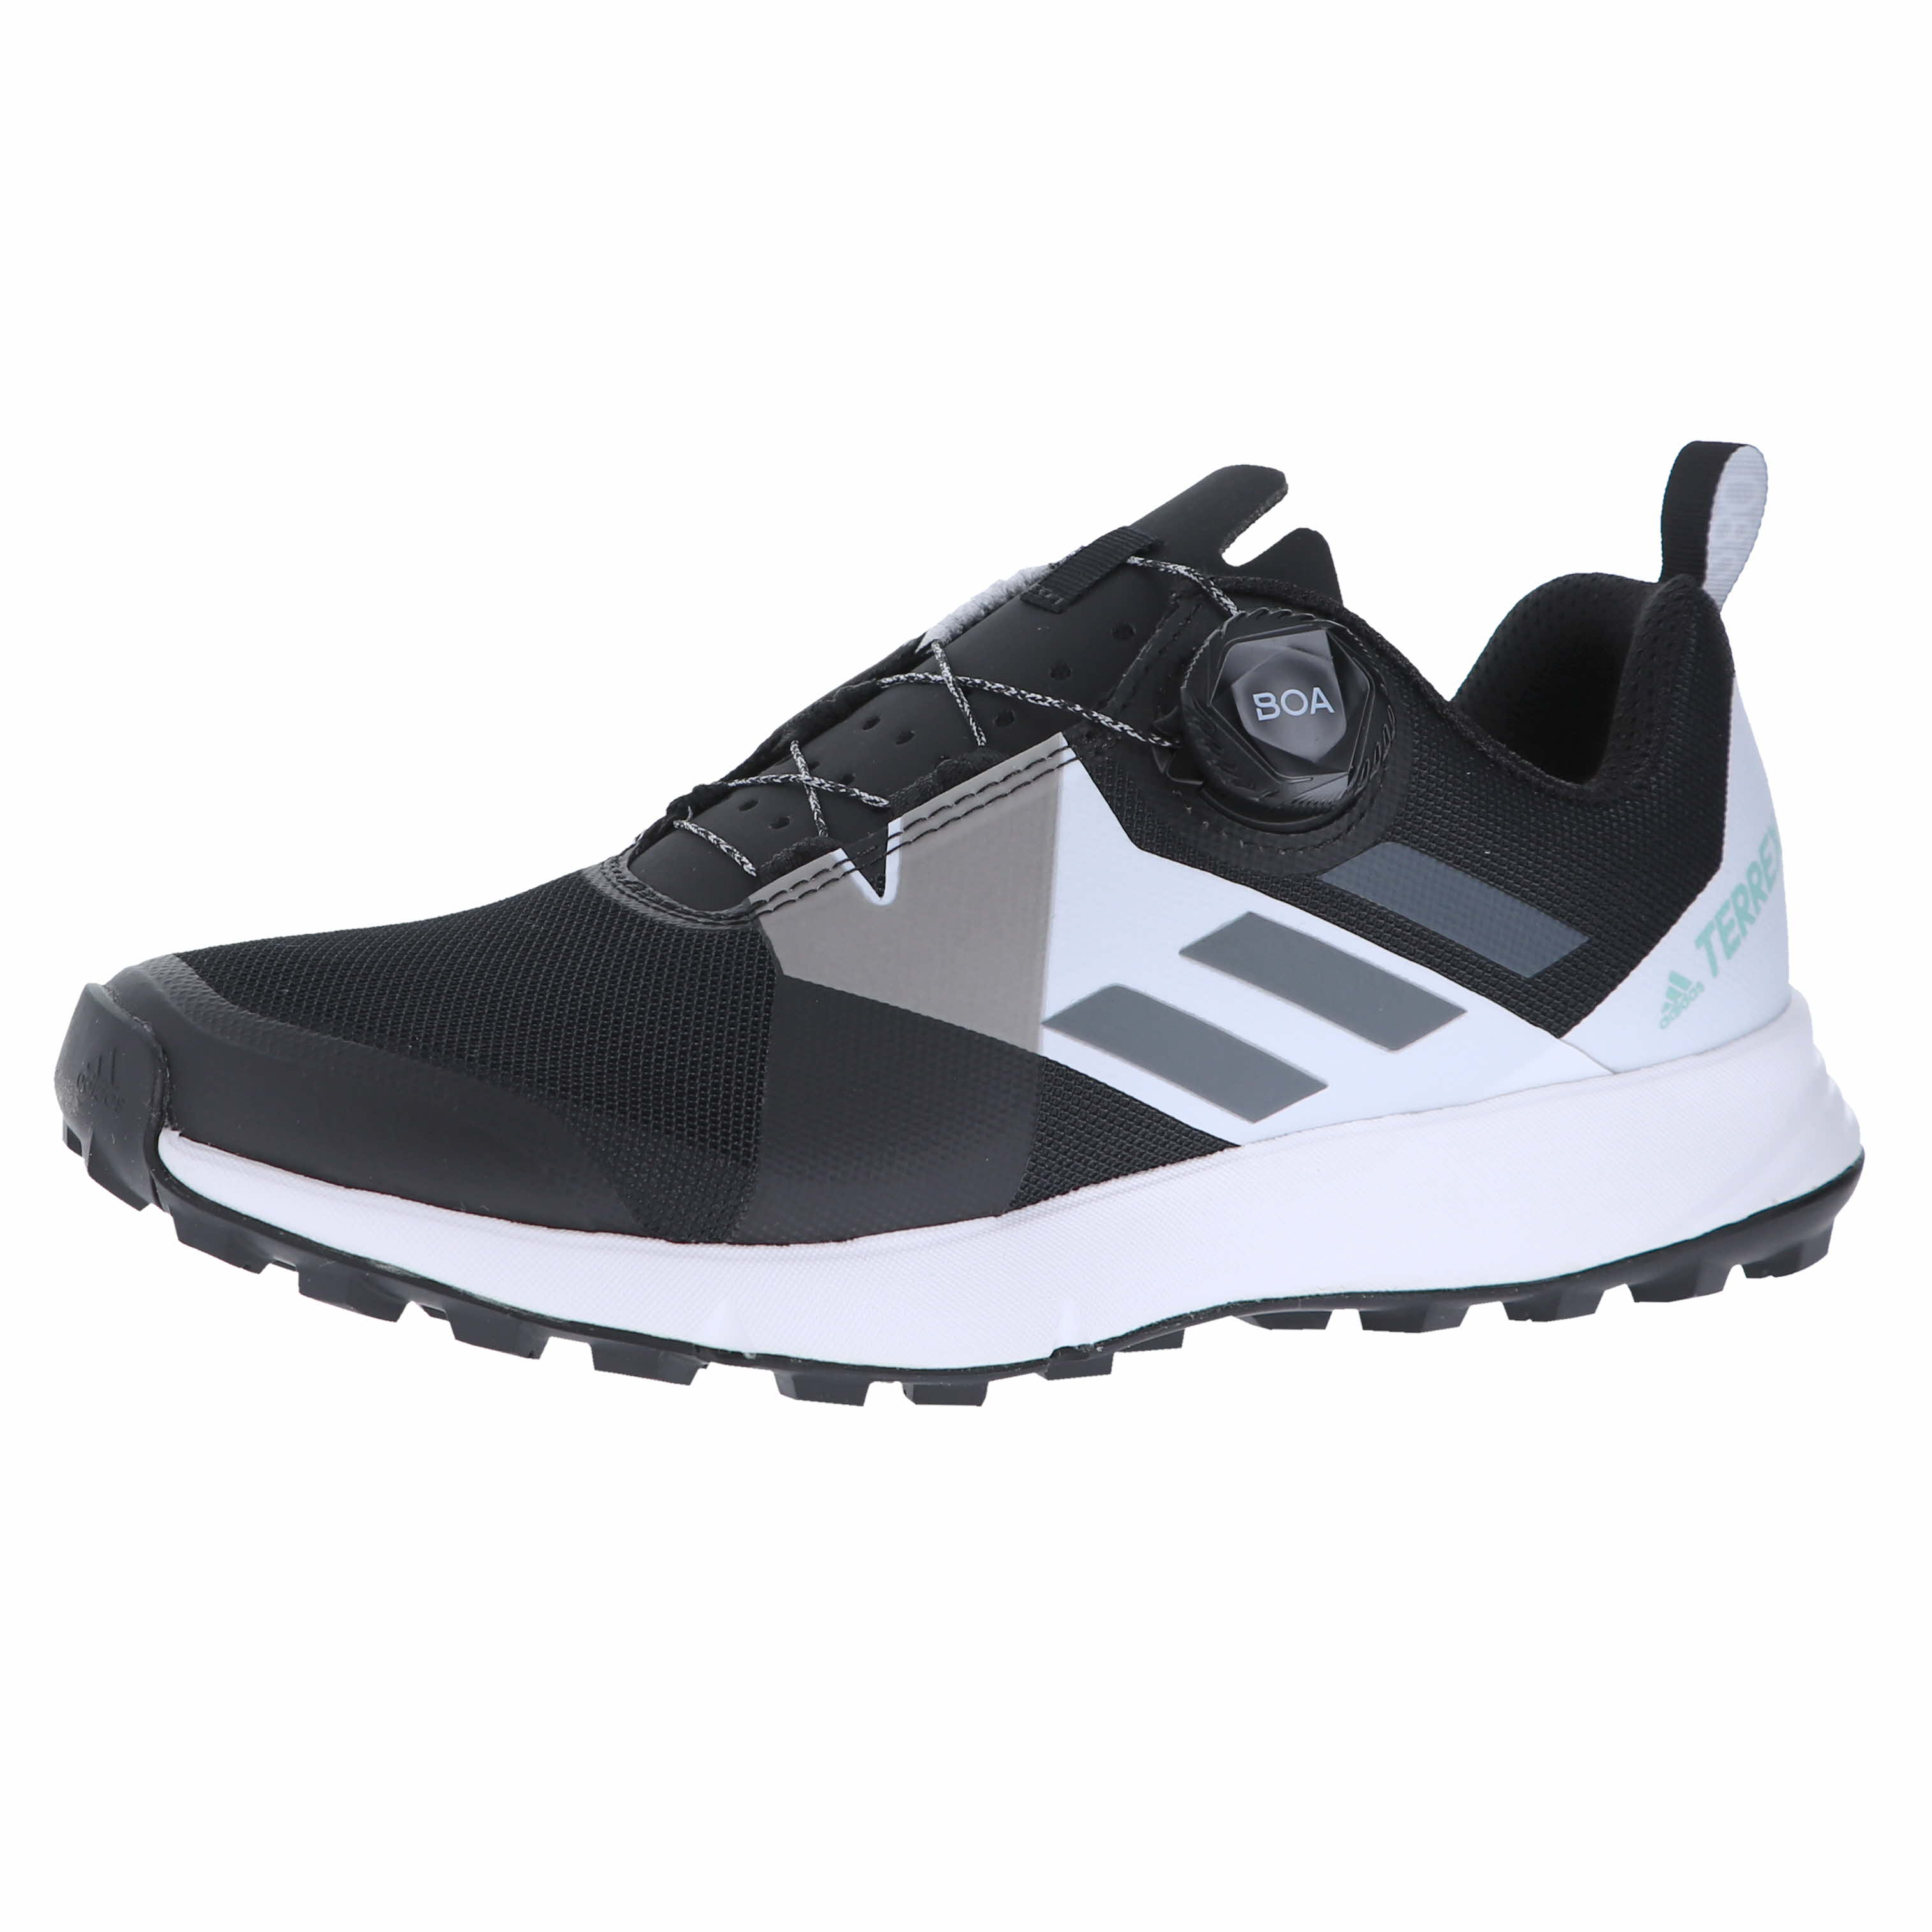 huge selection of ff9c1 b018e Details about Adidas Terrex Two Boa W Black Translucent White Womens  Lace-Up Size 10M